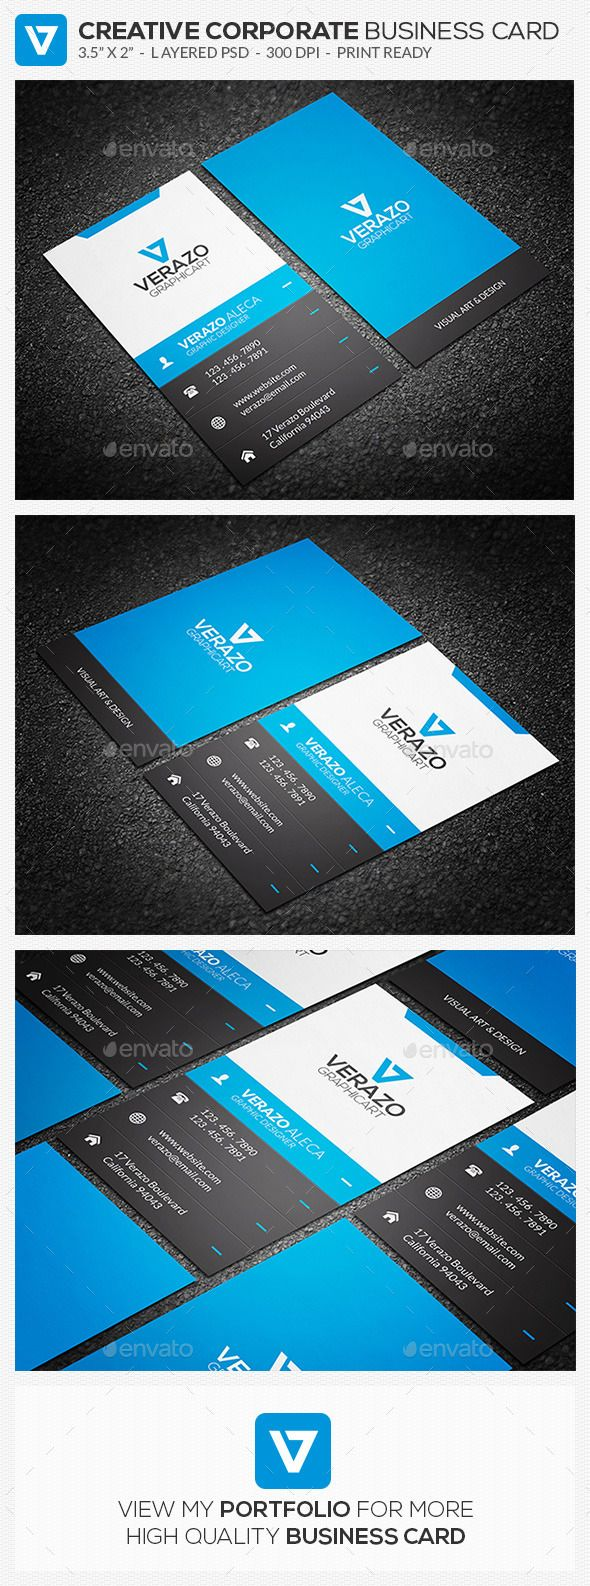 Creative Corporate Business Card Corporate Business Card - Buy business card template